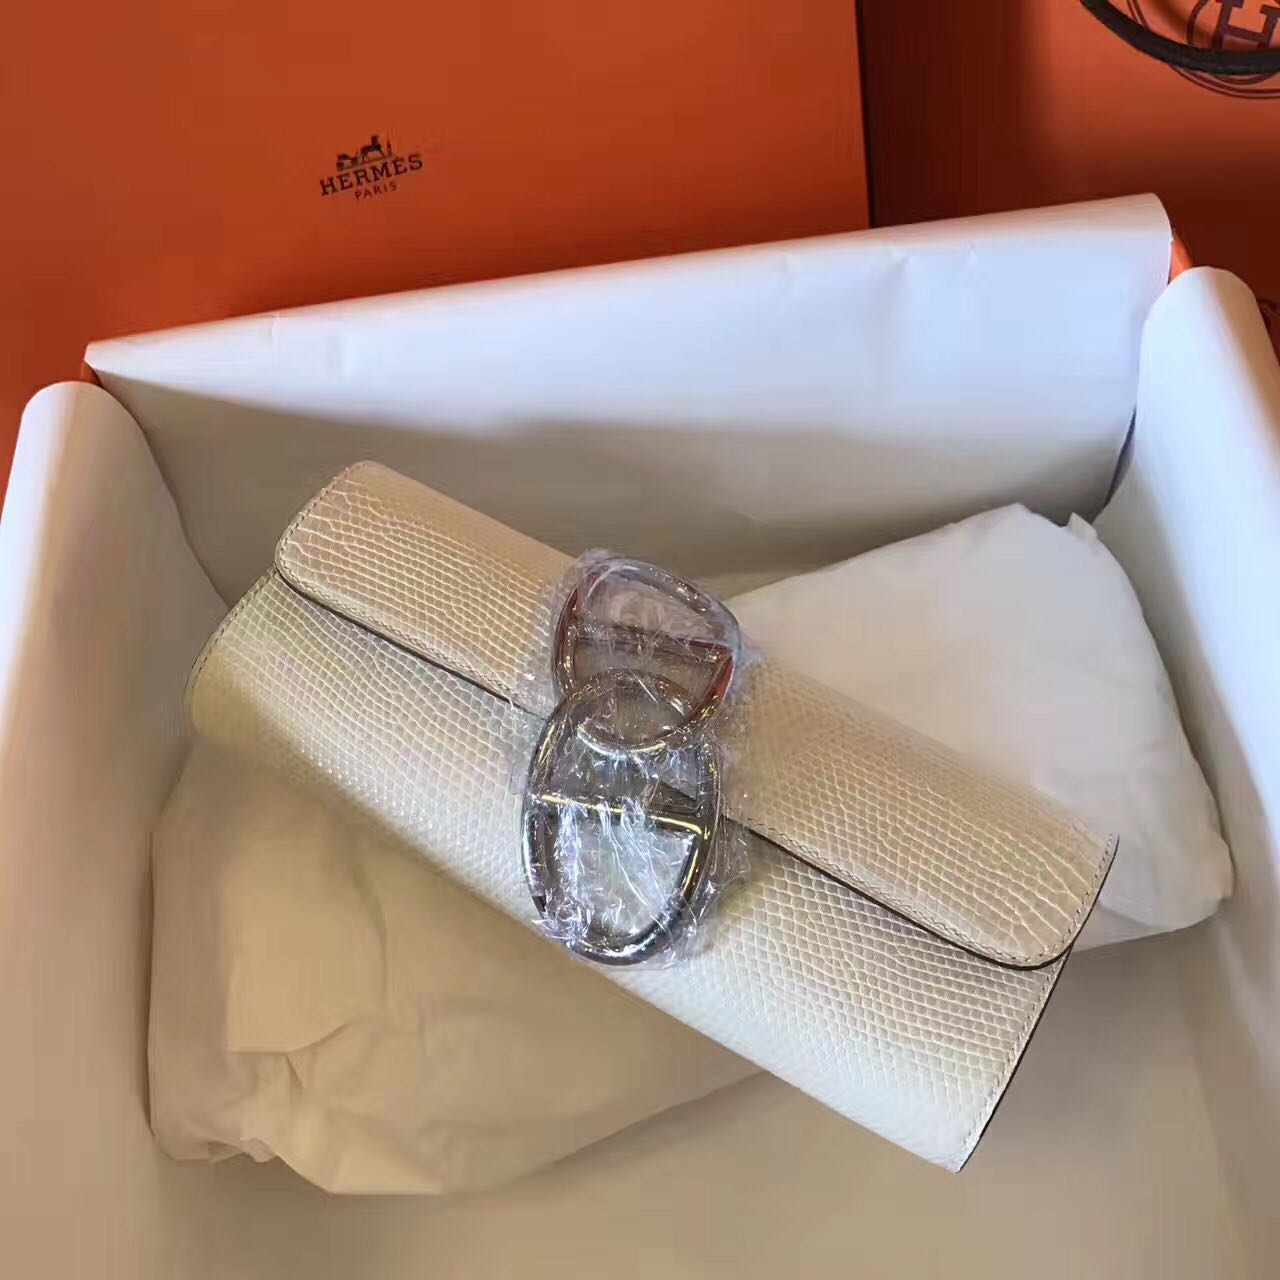 Hermes Original Lizard Leather Cluth Bag 17726 Offwhite